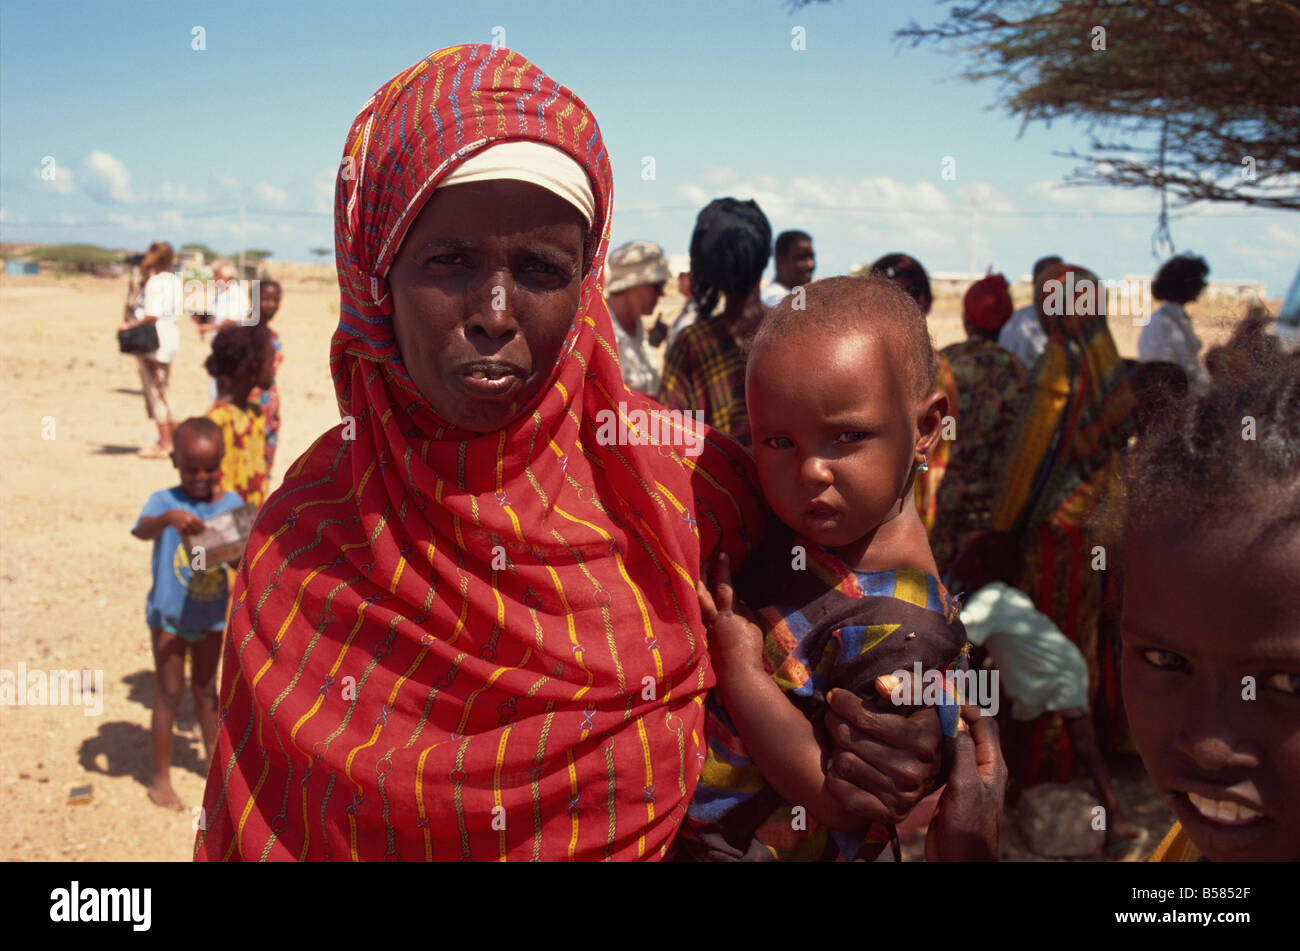 Woman with child Djibouti Africa Stock Photo